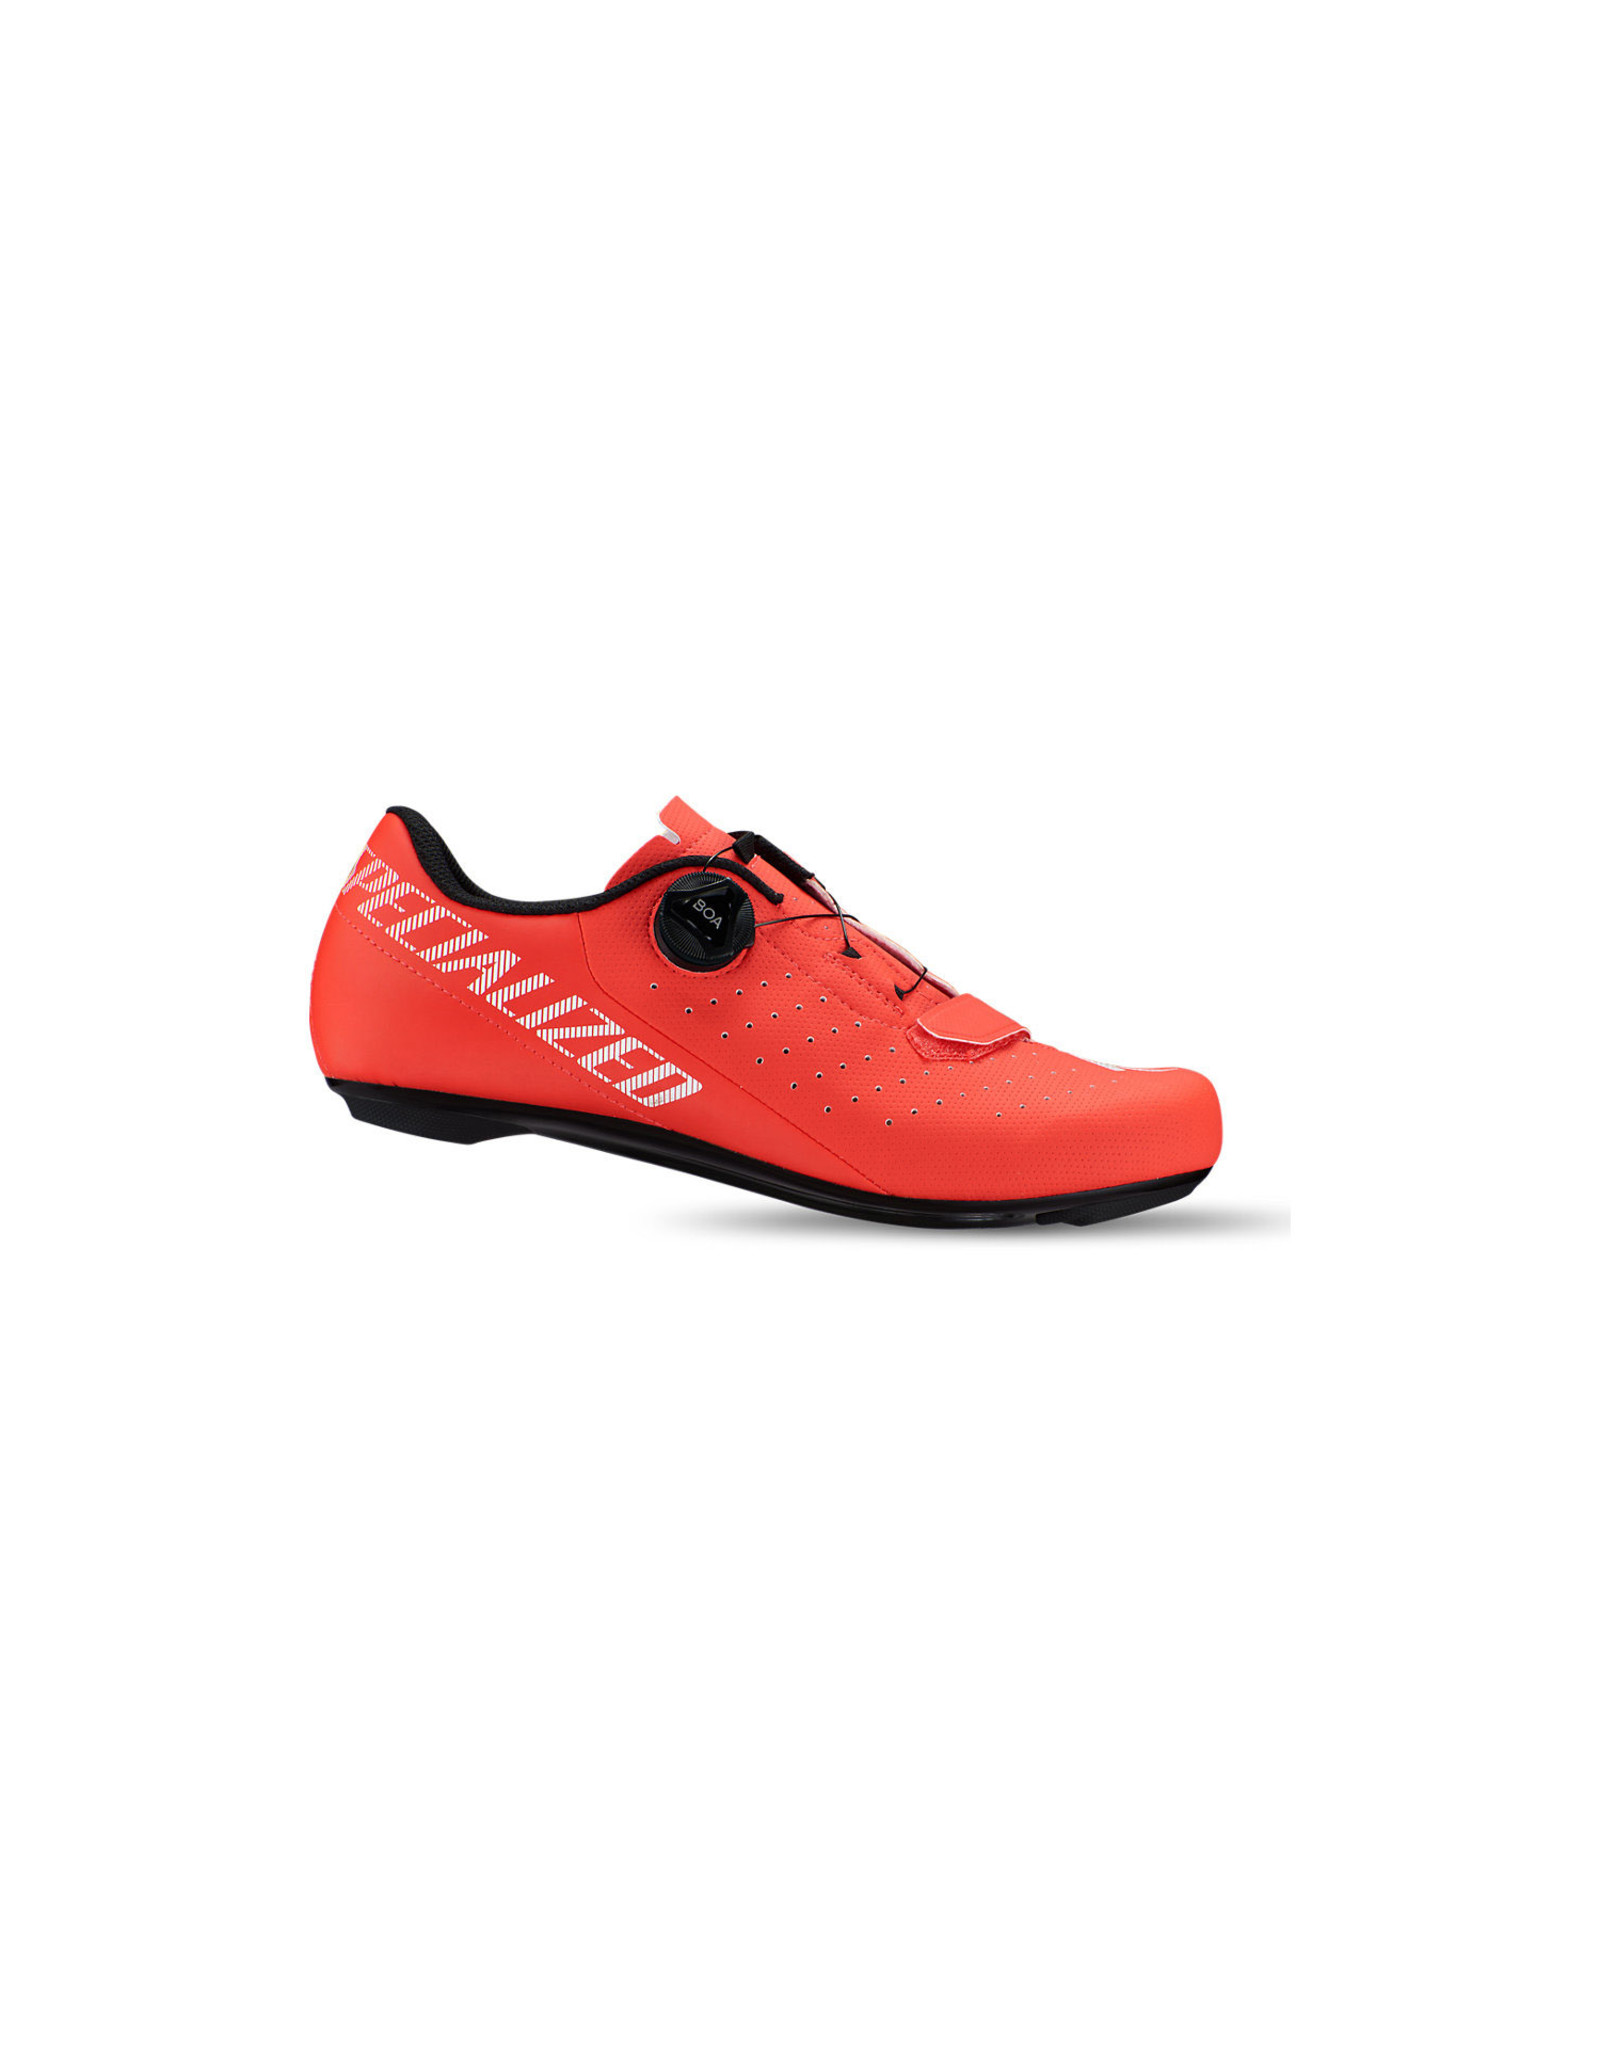 Specialized Shoes - Torch 1.0 Road